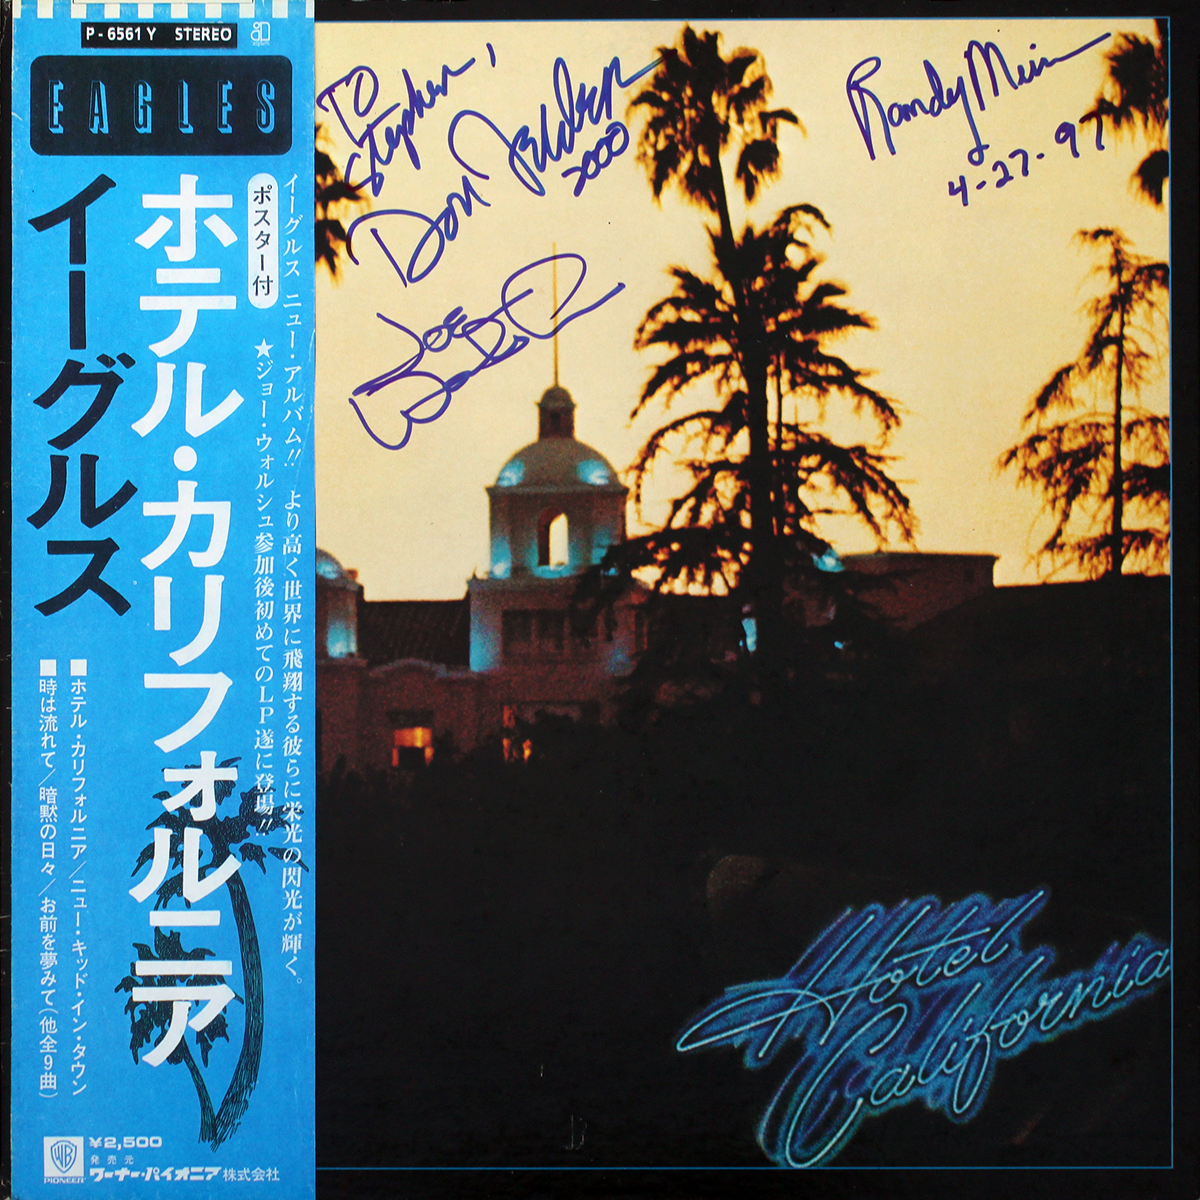 Eagles Hotel California LP (Japanese Import)